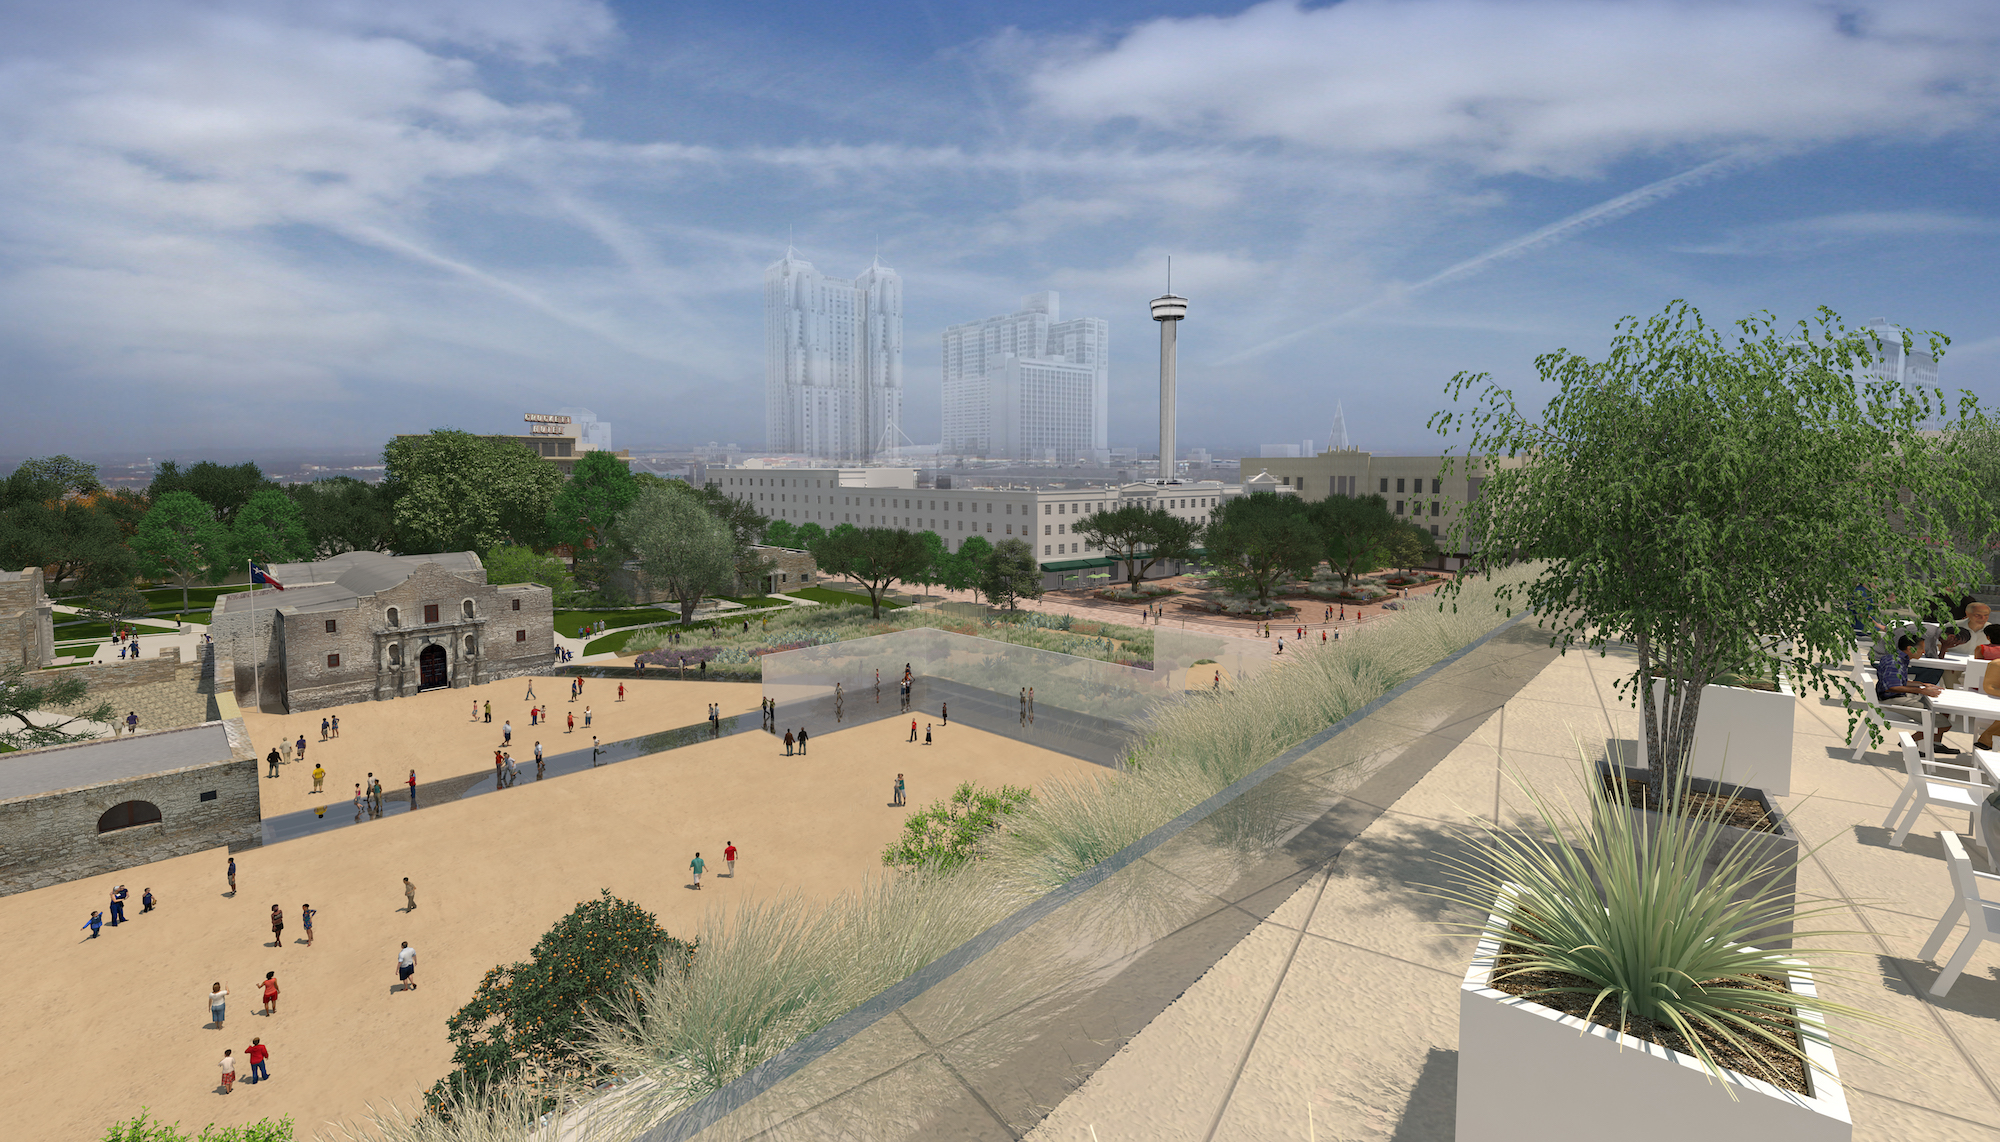 This rendering illustrates the possible view of Alamo Plaza from atop of the Crockett building, where a rooftop cafe is proposed.